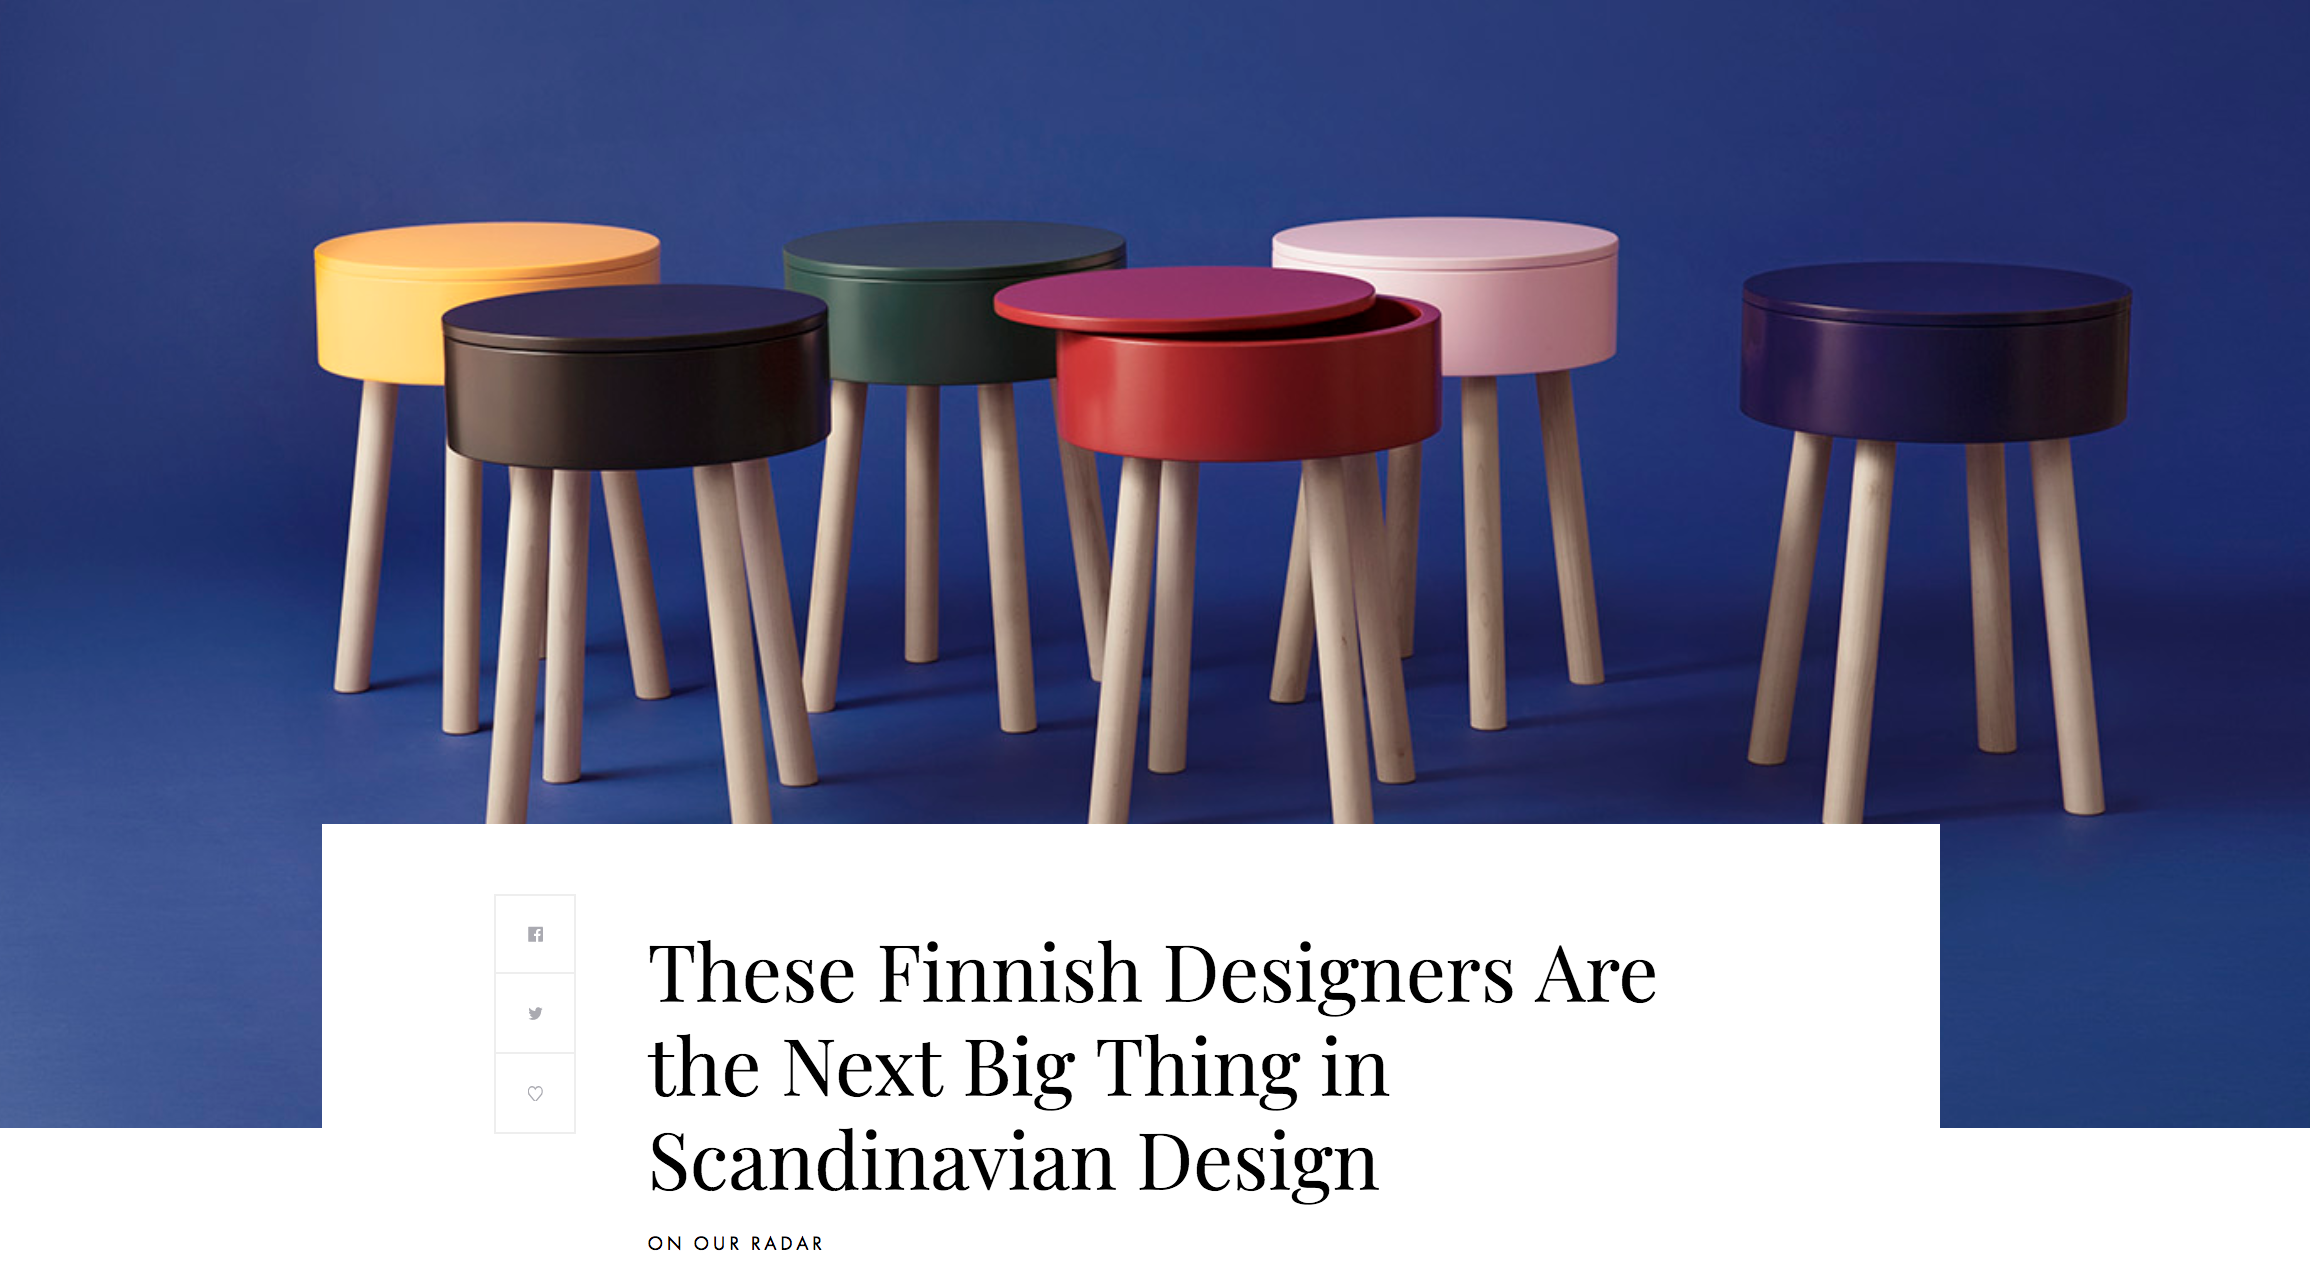 Nonagon Style: These Finnish Designers Are the Next Big Thing in Scandinavian Design - Read more >>